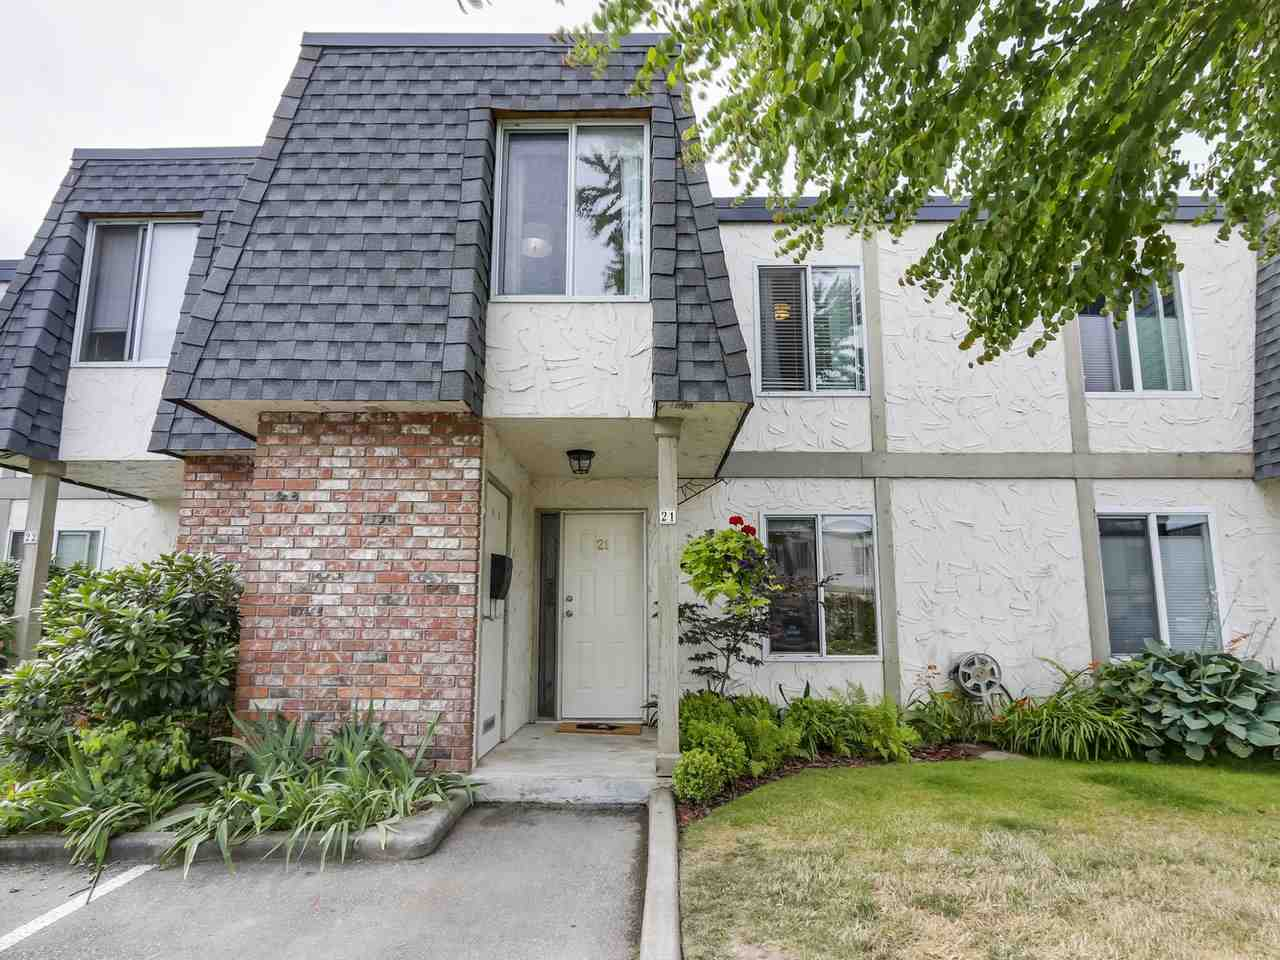 Main Photo: 21 10820 SPRINGMONT Drive in Richmond: Steveston North Townhouse for sale : MLS®# R2292079